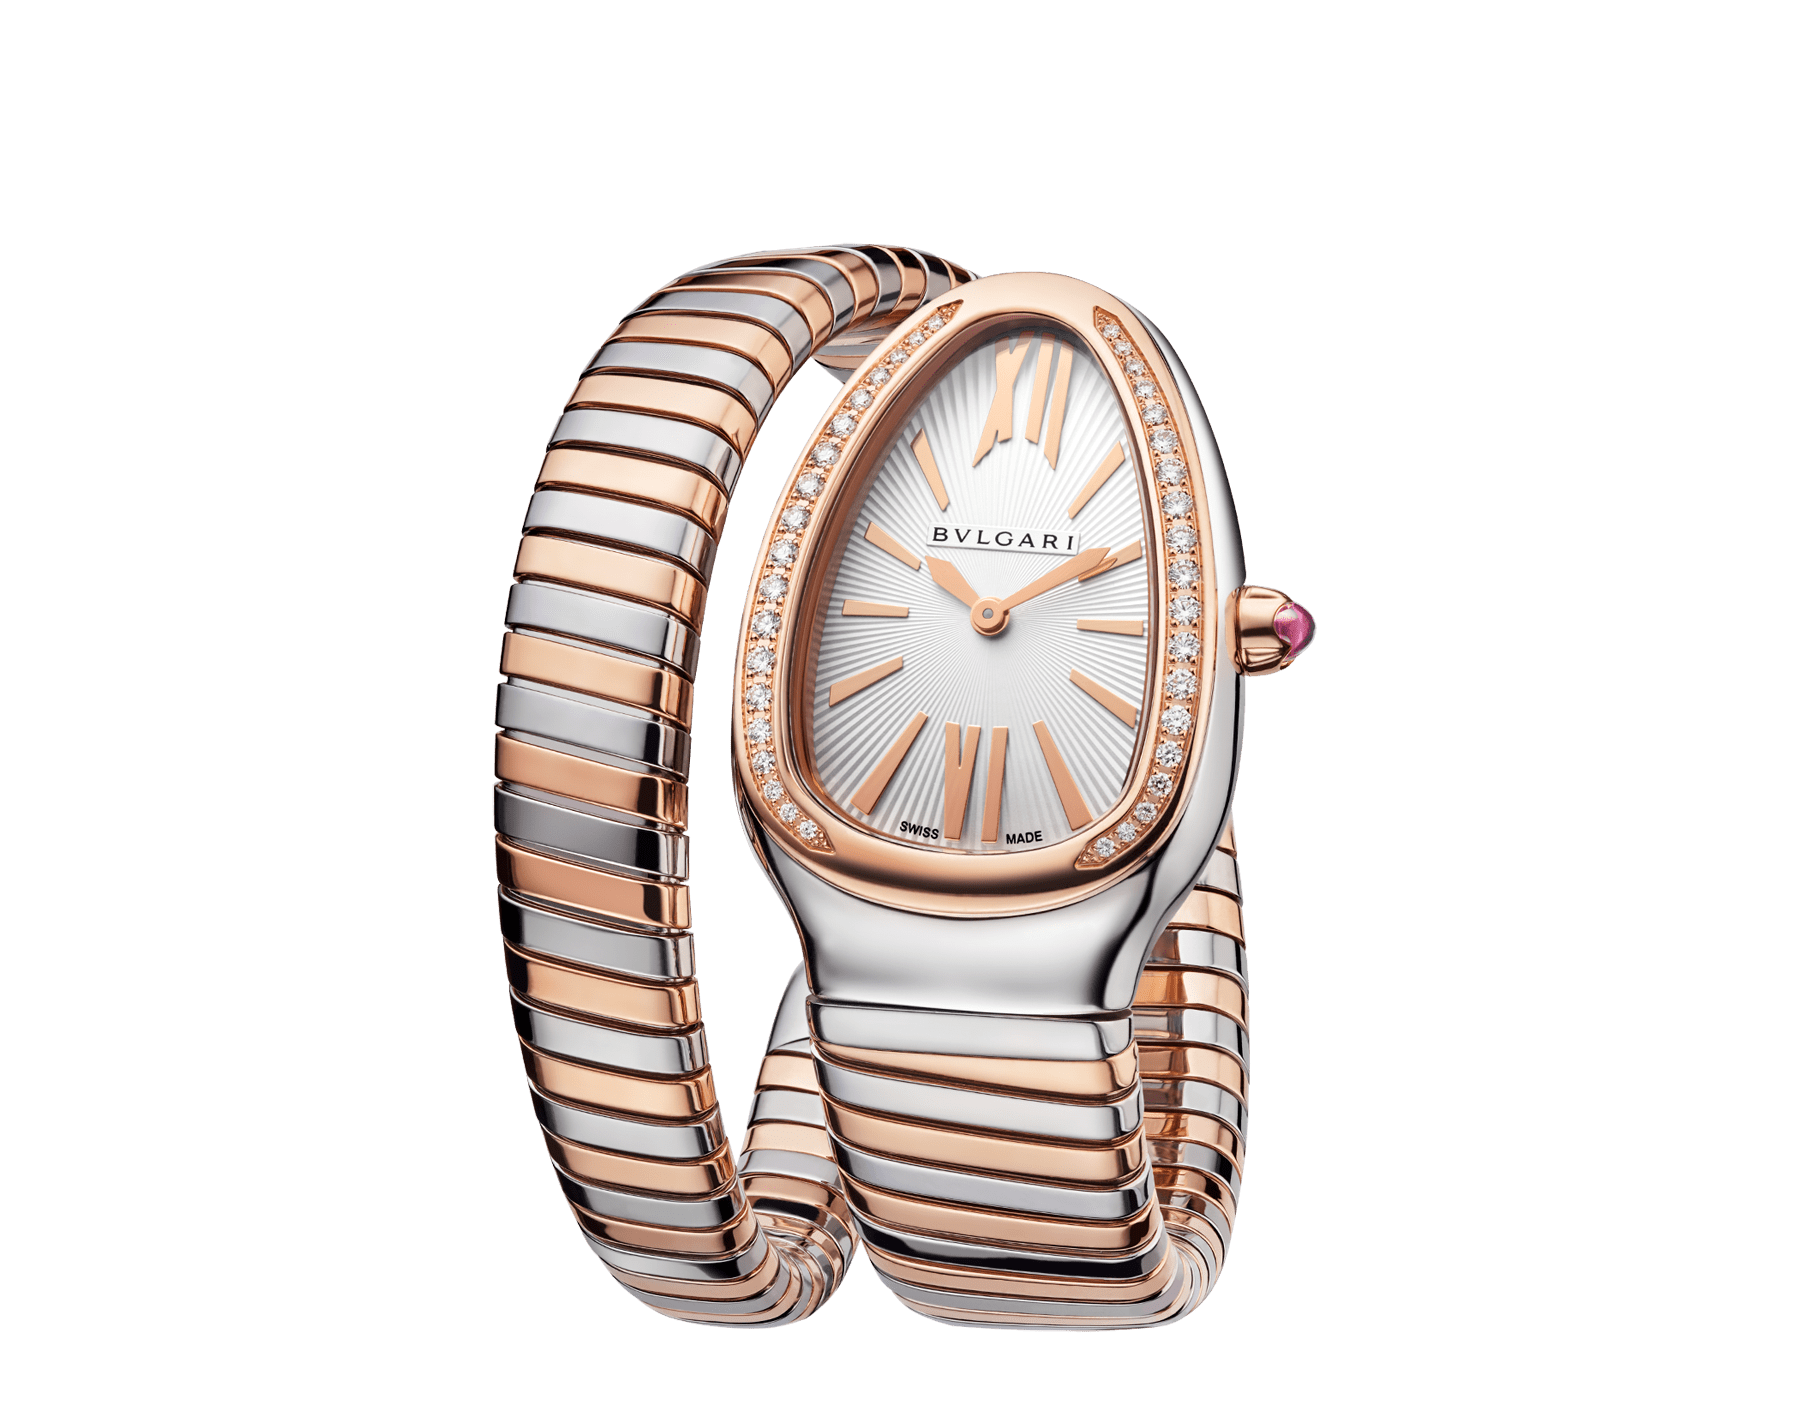 Serpenti Tubogas single spiral watch with stainless steel case, 18 kt rose gold bezel set with brilliant cut diamonds, silver opaline dial, 18 kt rose gold and stainless steel bracelet. 102237 image 2